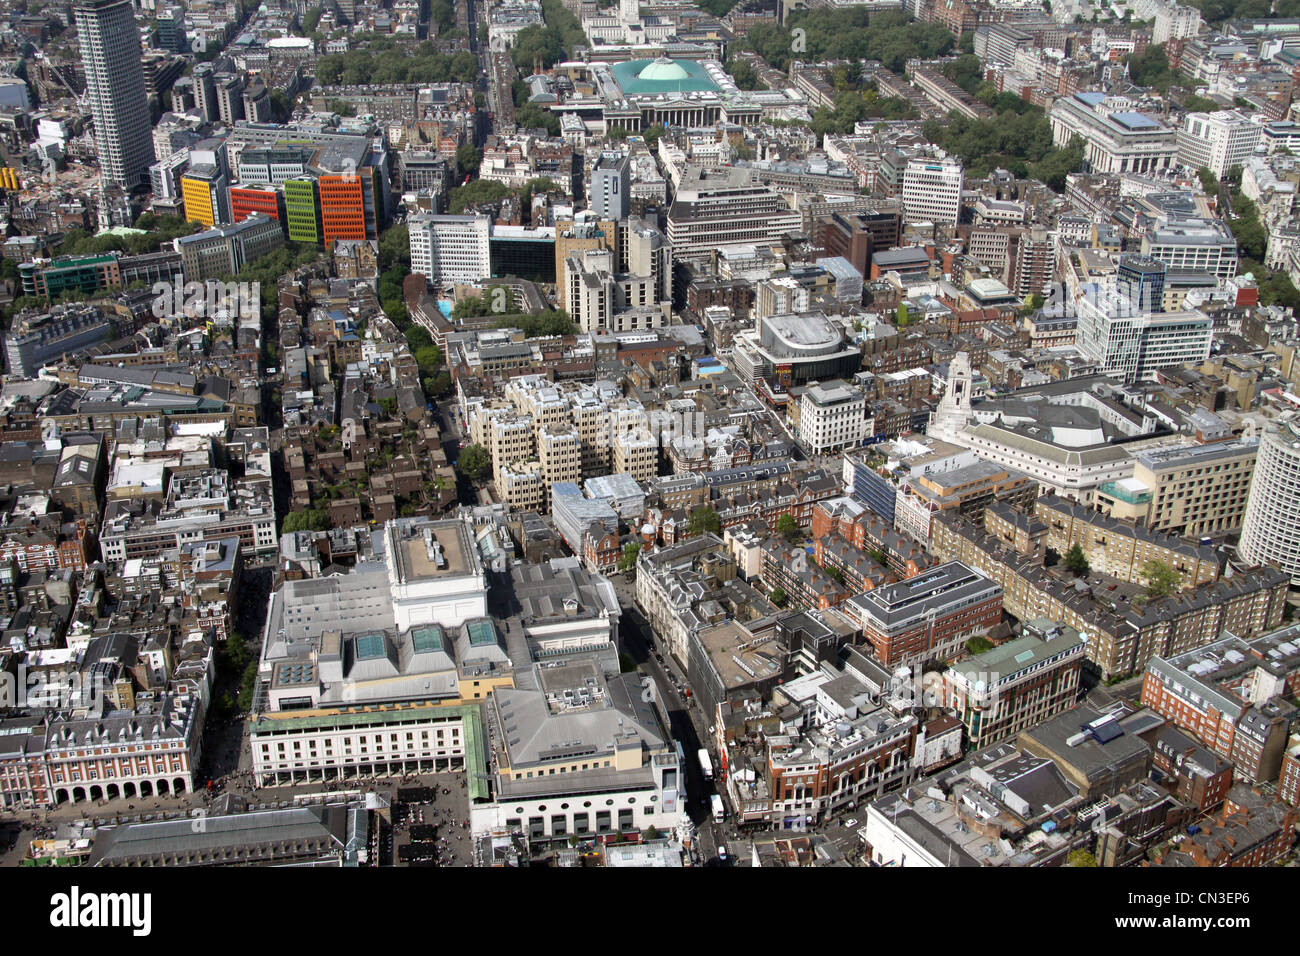 Marvelous Aerial View From The Strand And Aldwych Covent Garden London Wc  With Fair Aerial View From The Strand And Aldwych Covent Garden London Wc With Amazing Cyprus Gardens Also The Garden Room Guide In Addition Garden Furniture Deals And Indoor Garden Party Ideas As Well As Fox Garden Ornaments Additionally Chigwell Nursery Garden Centre From Alamycom With   Fair Aerial View From The Strand And Aldwych Covent Garden London Wc  With Amazing Aerial View From The Strand And Aldwych Covent Garden London Wc And Marvelous Cyprus Gardens Also The Garden Room Guide In Addition Garden Furniture Deals From Alamycom